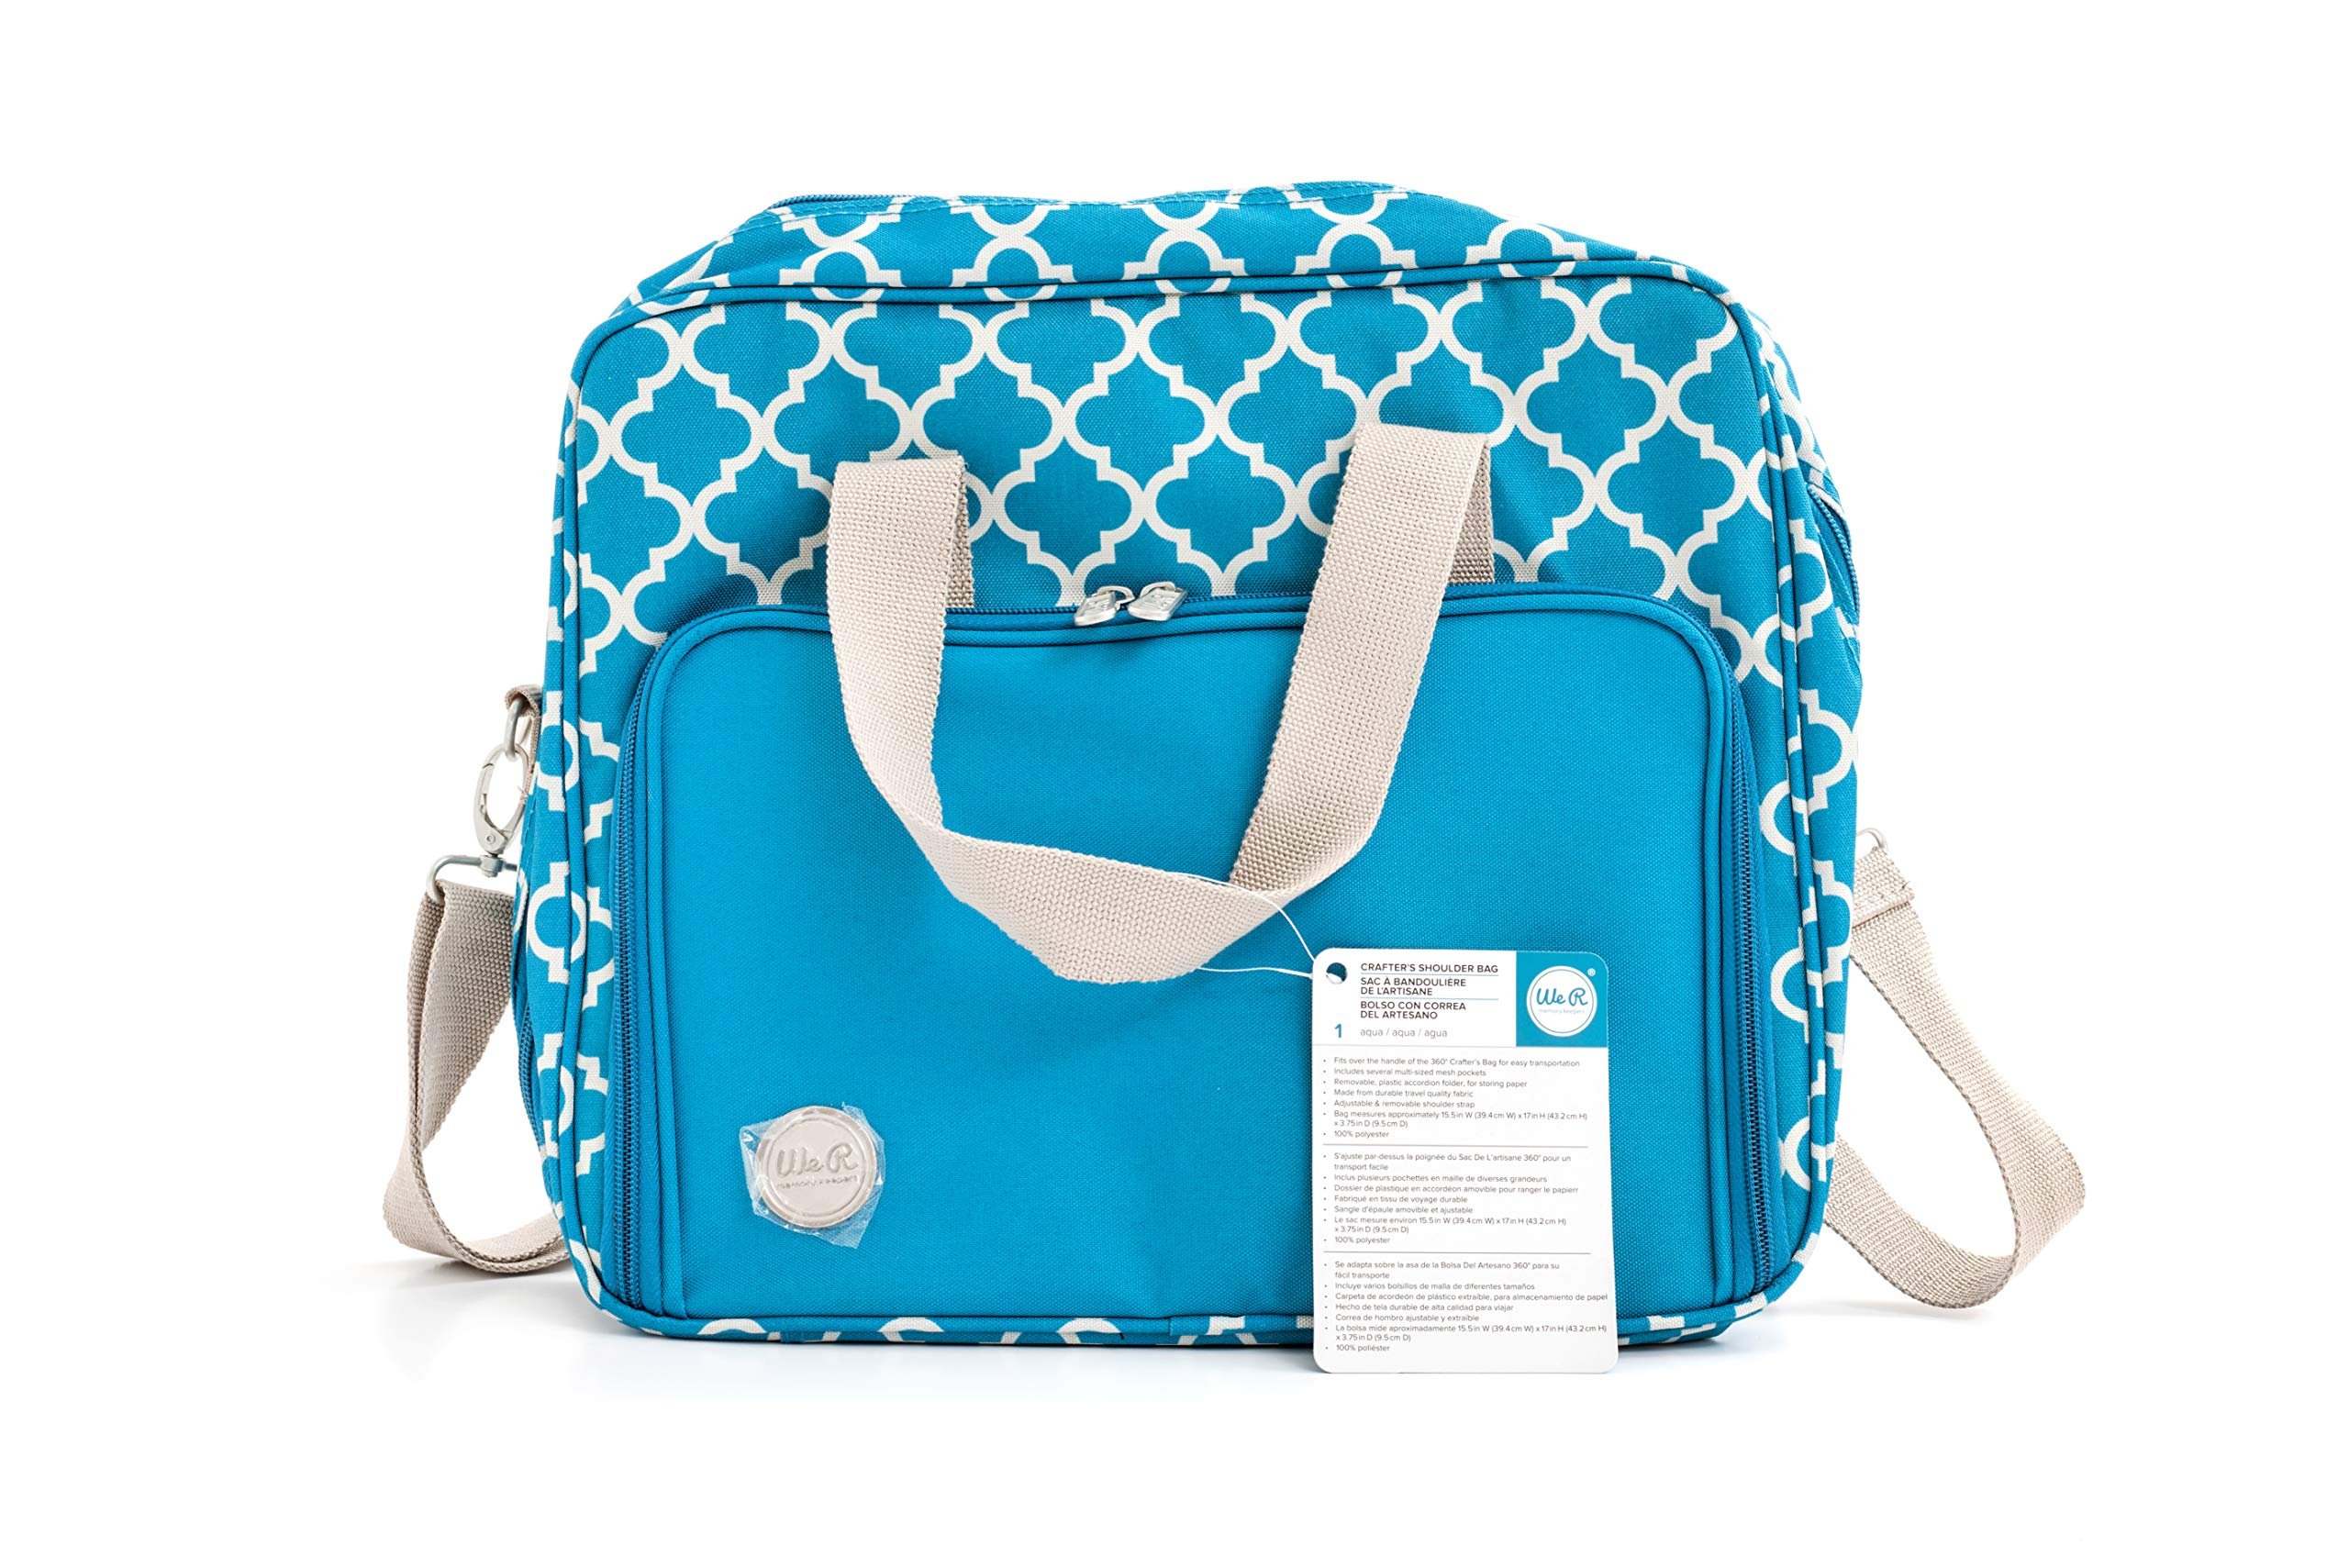 Crafter's Shoulder Bag by We R Memory Keepers | Aqua